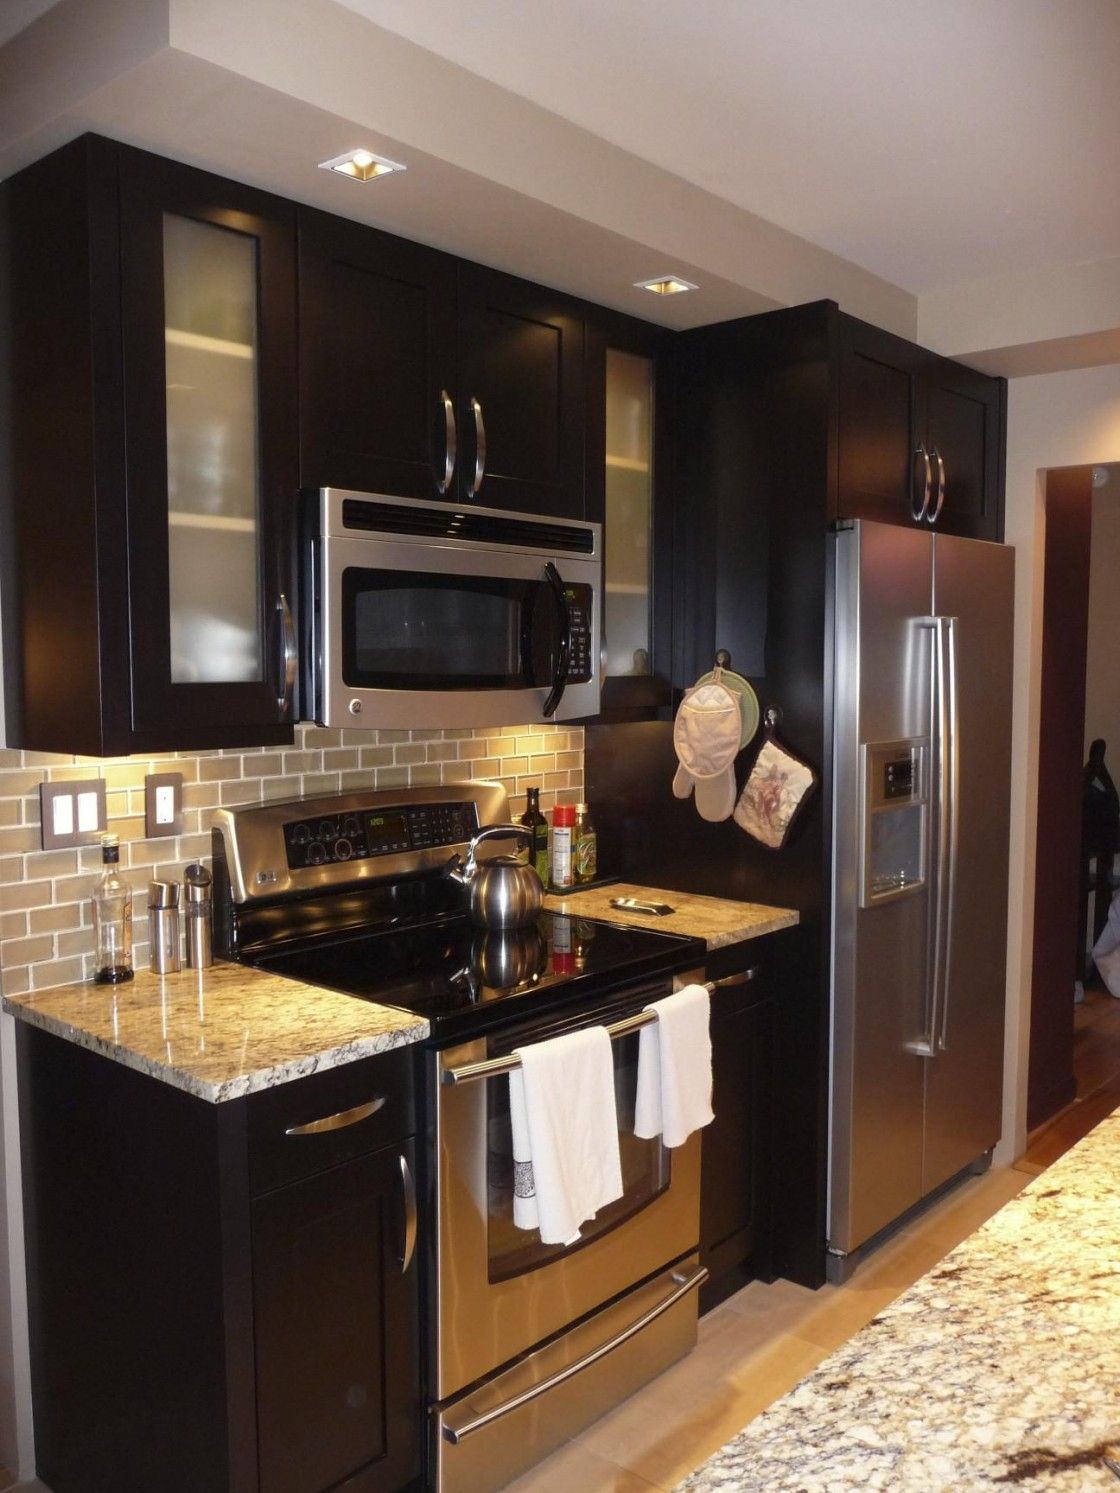 Kitchen designs cherry wood cabinets - L Modern Small Kitchen Design With Black Painted Cherry Wood Kitchen Cabinets Which Has Italian Granite